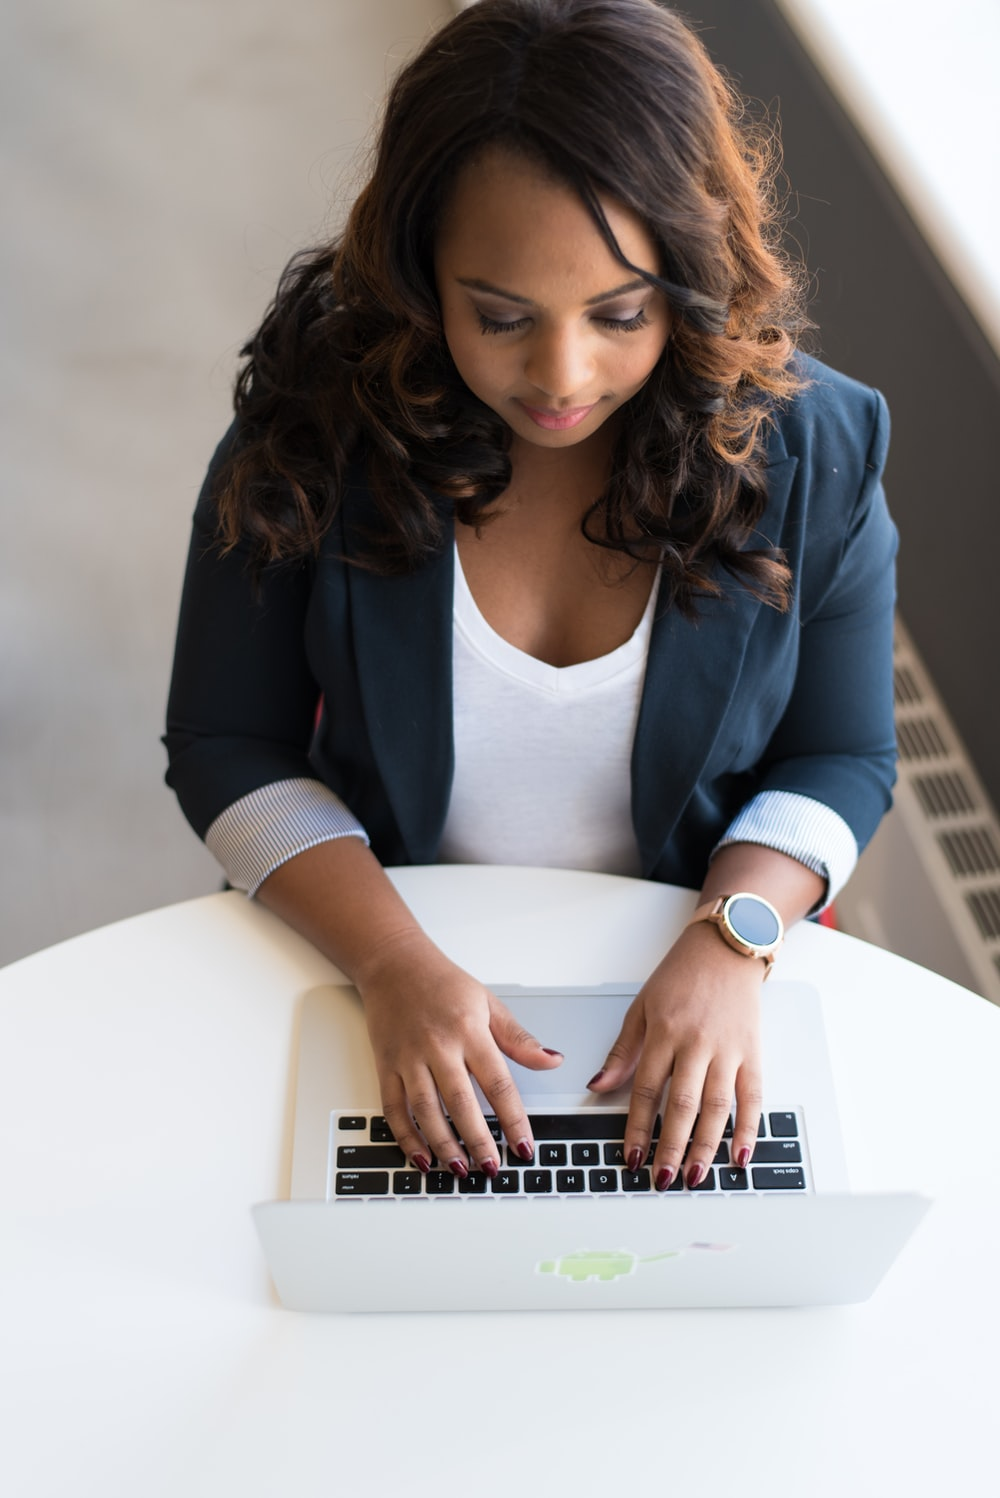 woman using MacBook laptop on table